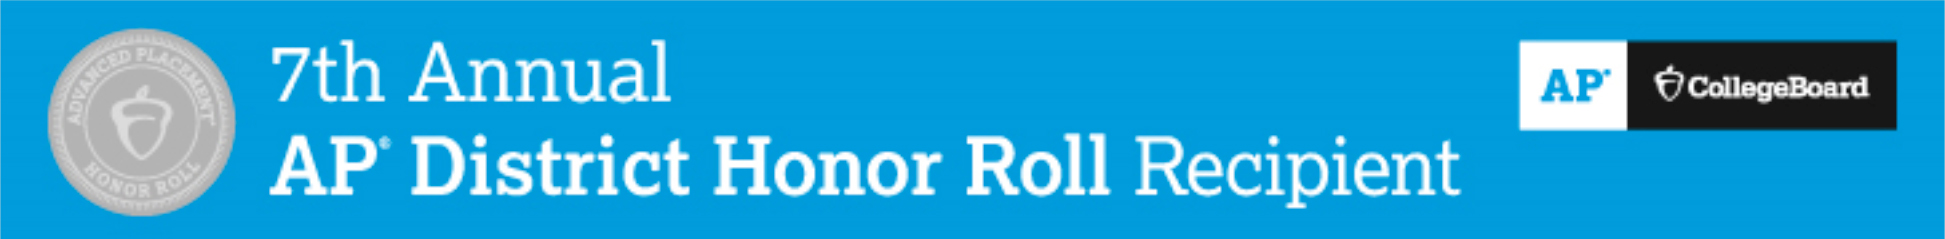 AP Honor Roll_Banner Instructions 7th Annual